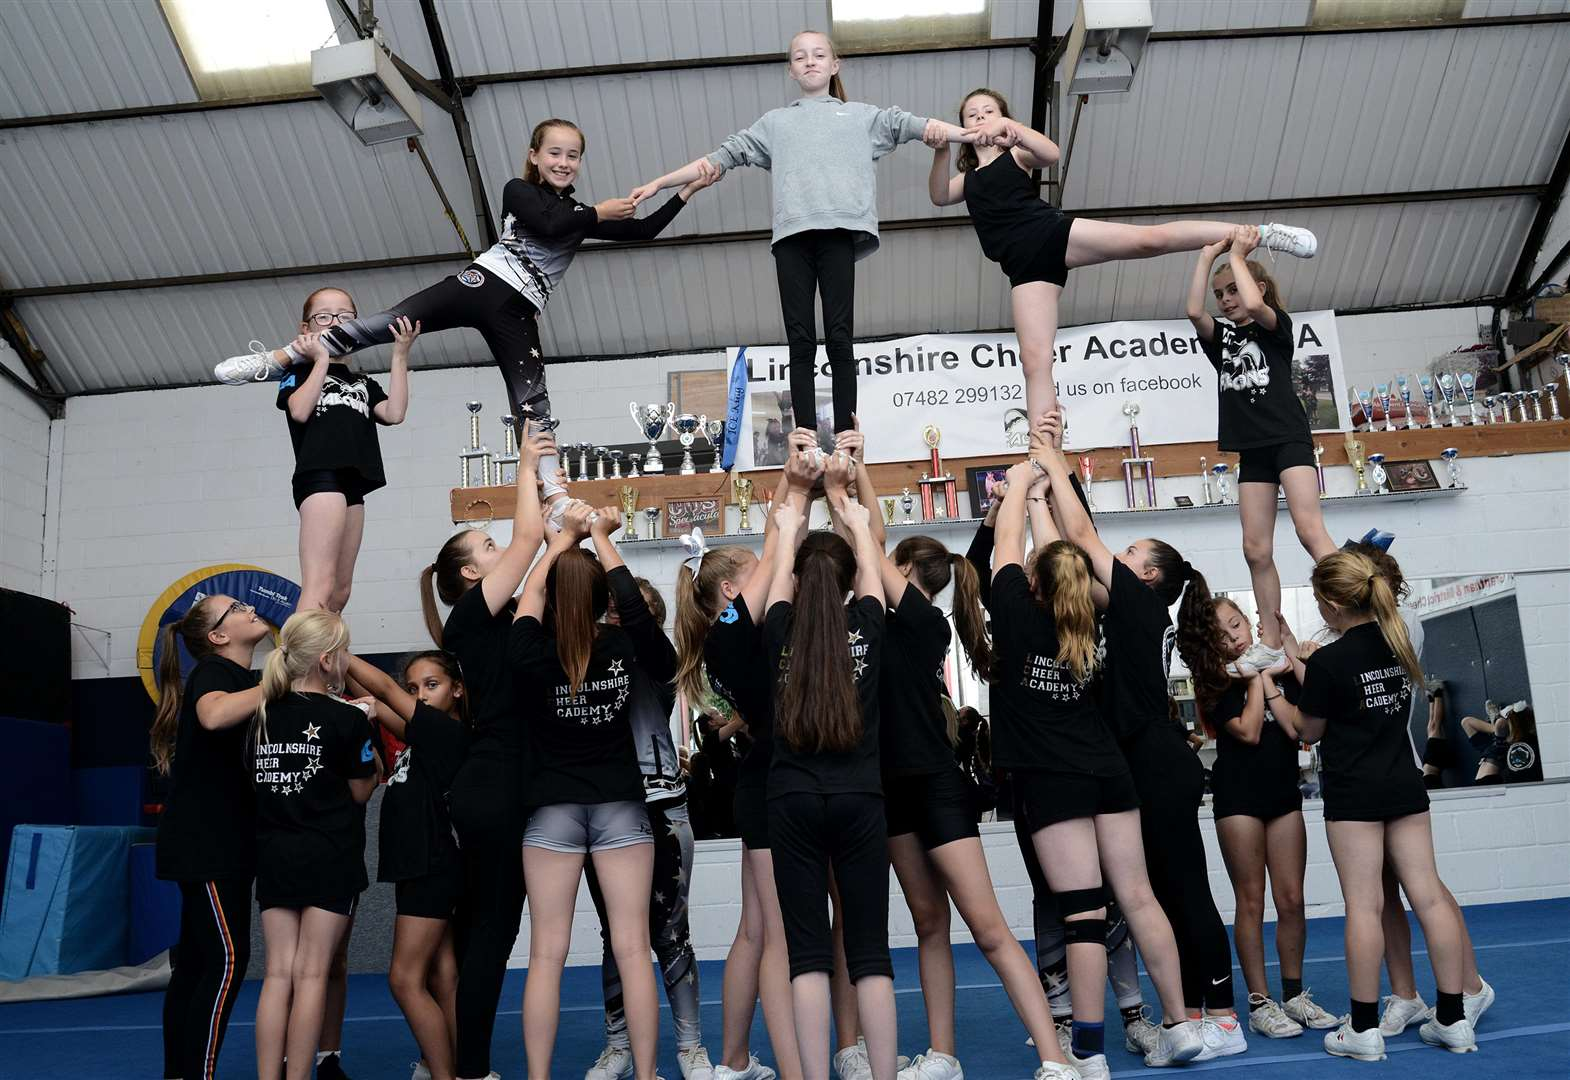 Cheerleading academy is appealing for more space in Grantham as popularity soars